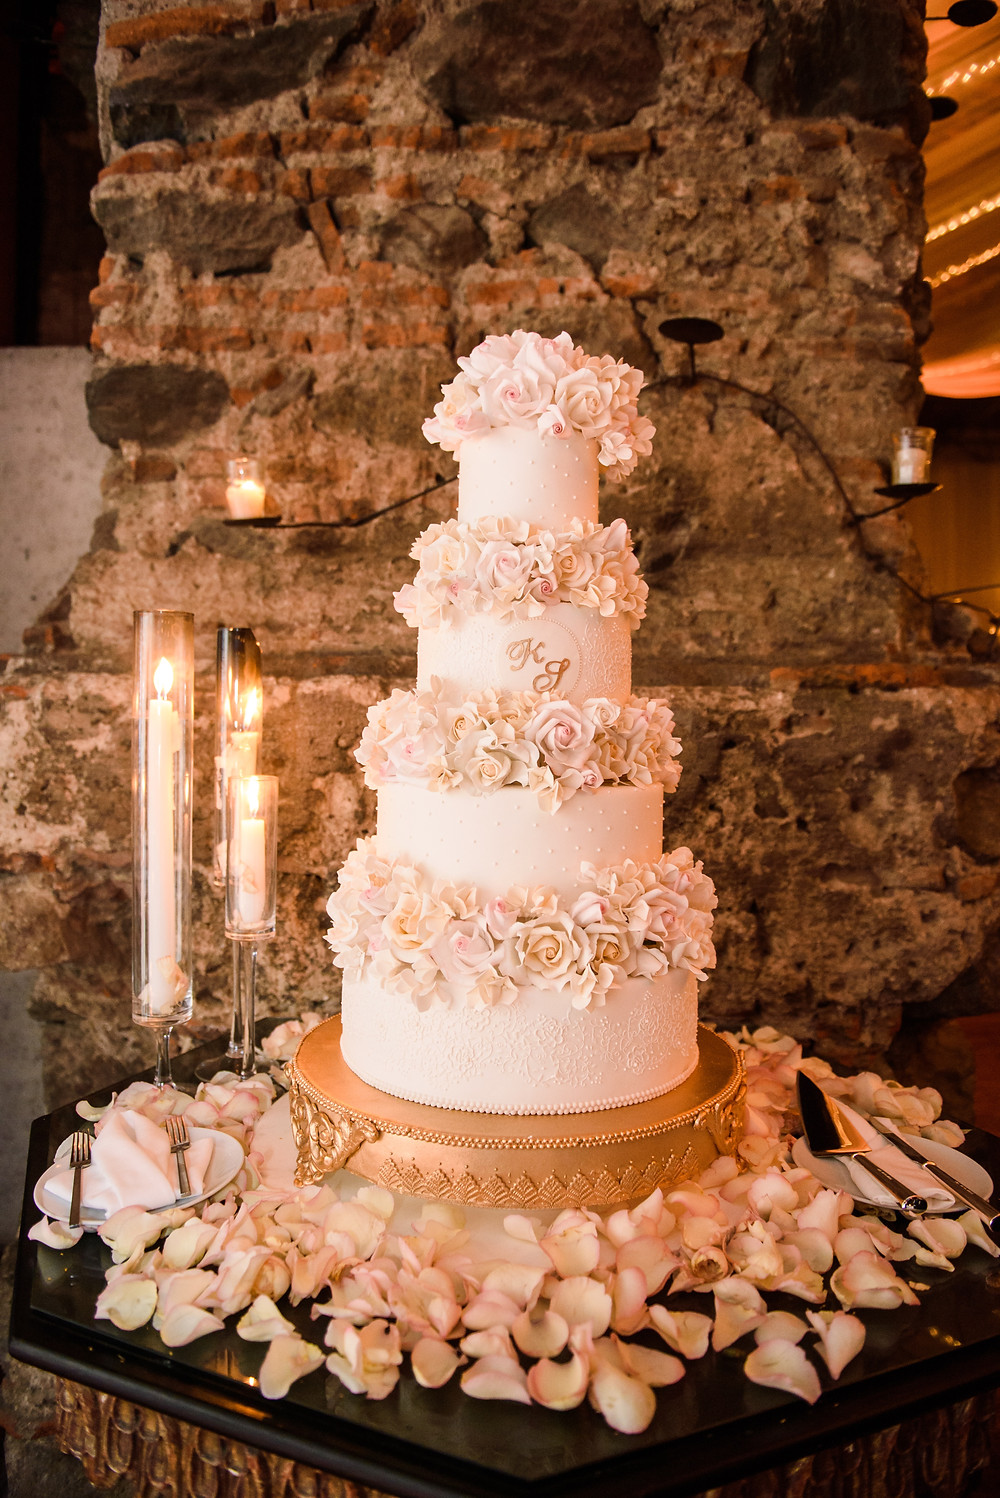 Best Wedding Cake Bakers in Chicago